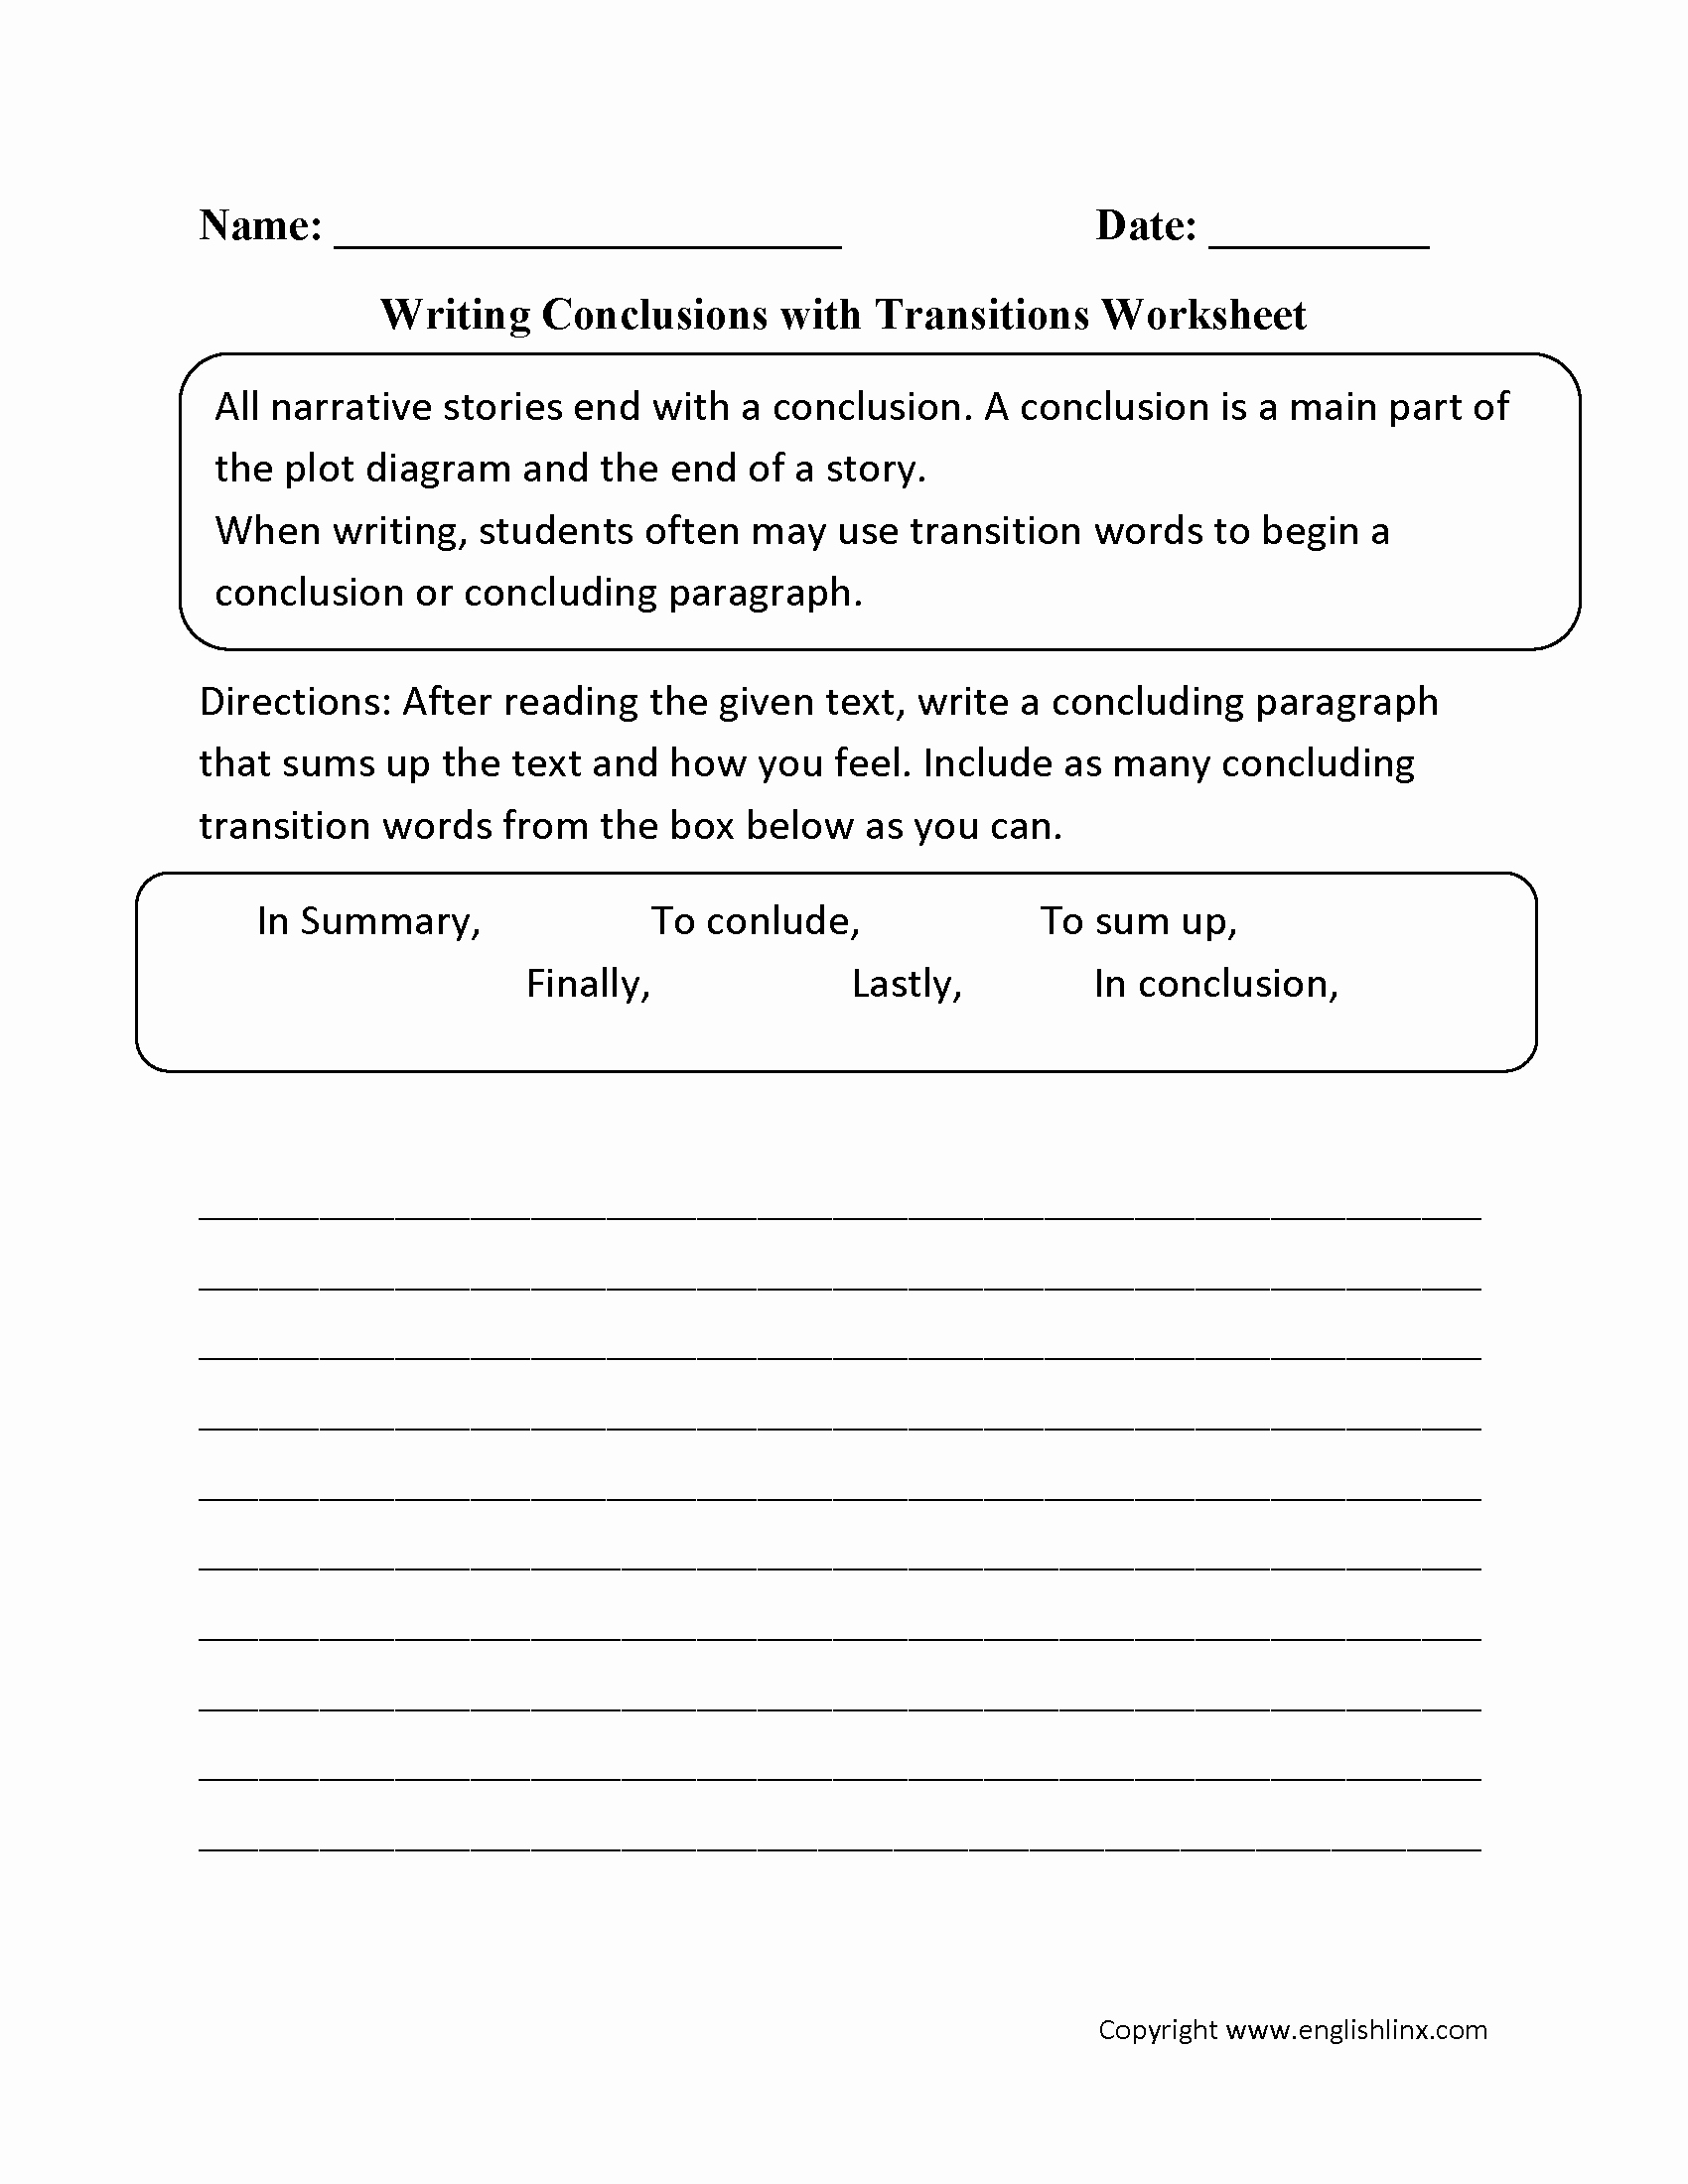 50 Making Conclusions Geometry Worksheet Answers